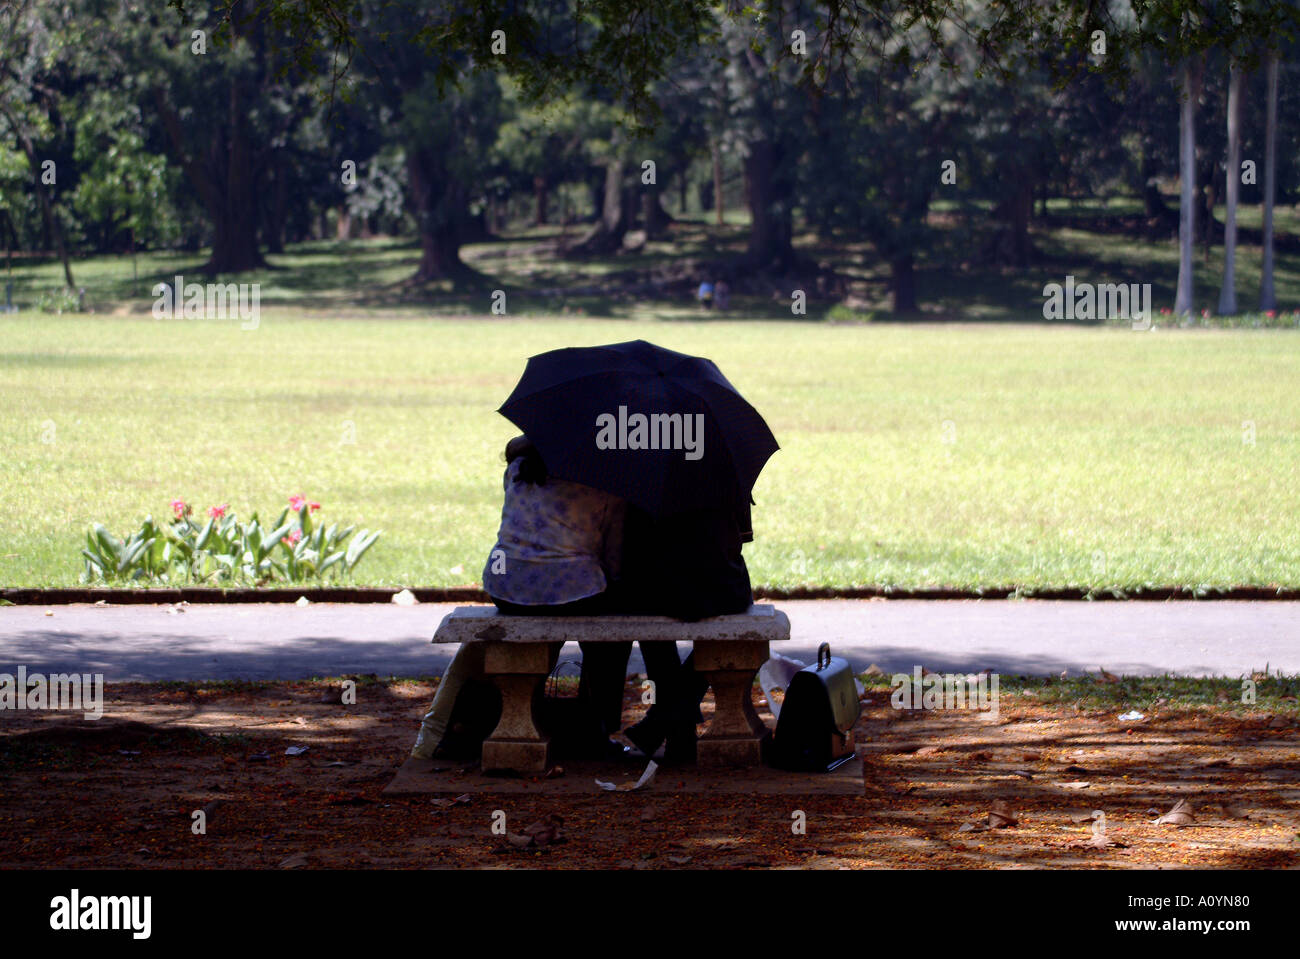 Park Bench Love Old Style Stock Photo 3295615 Alamy